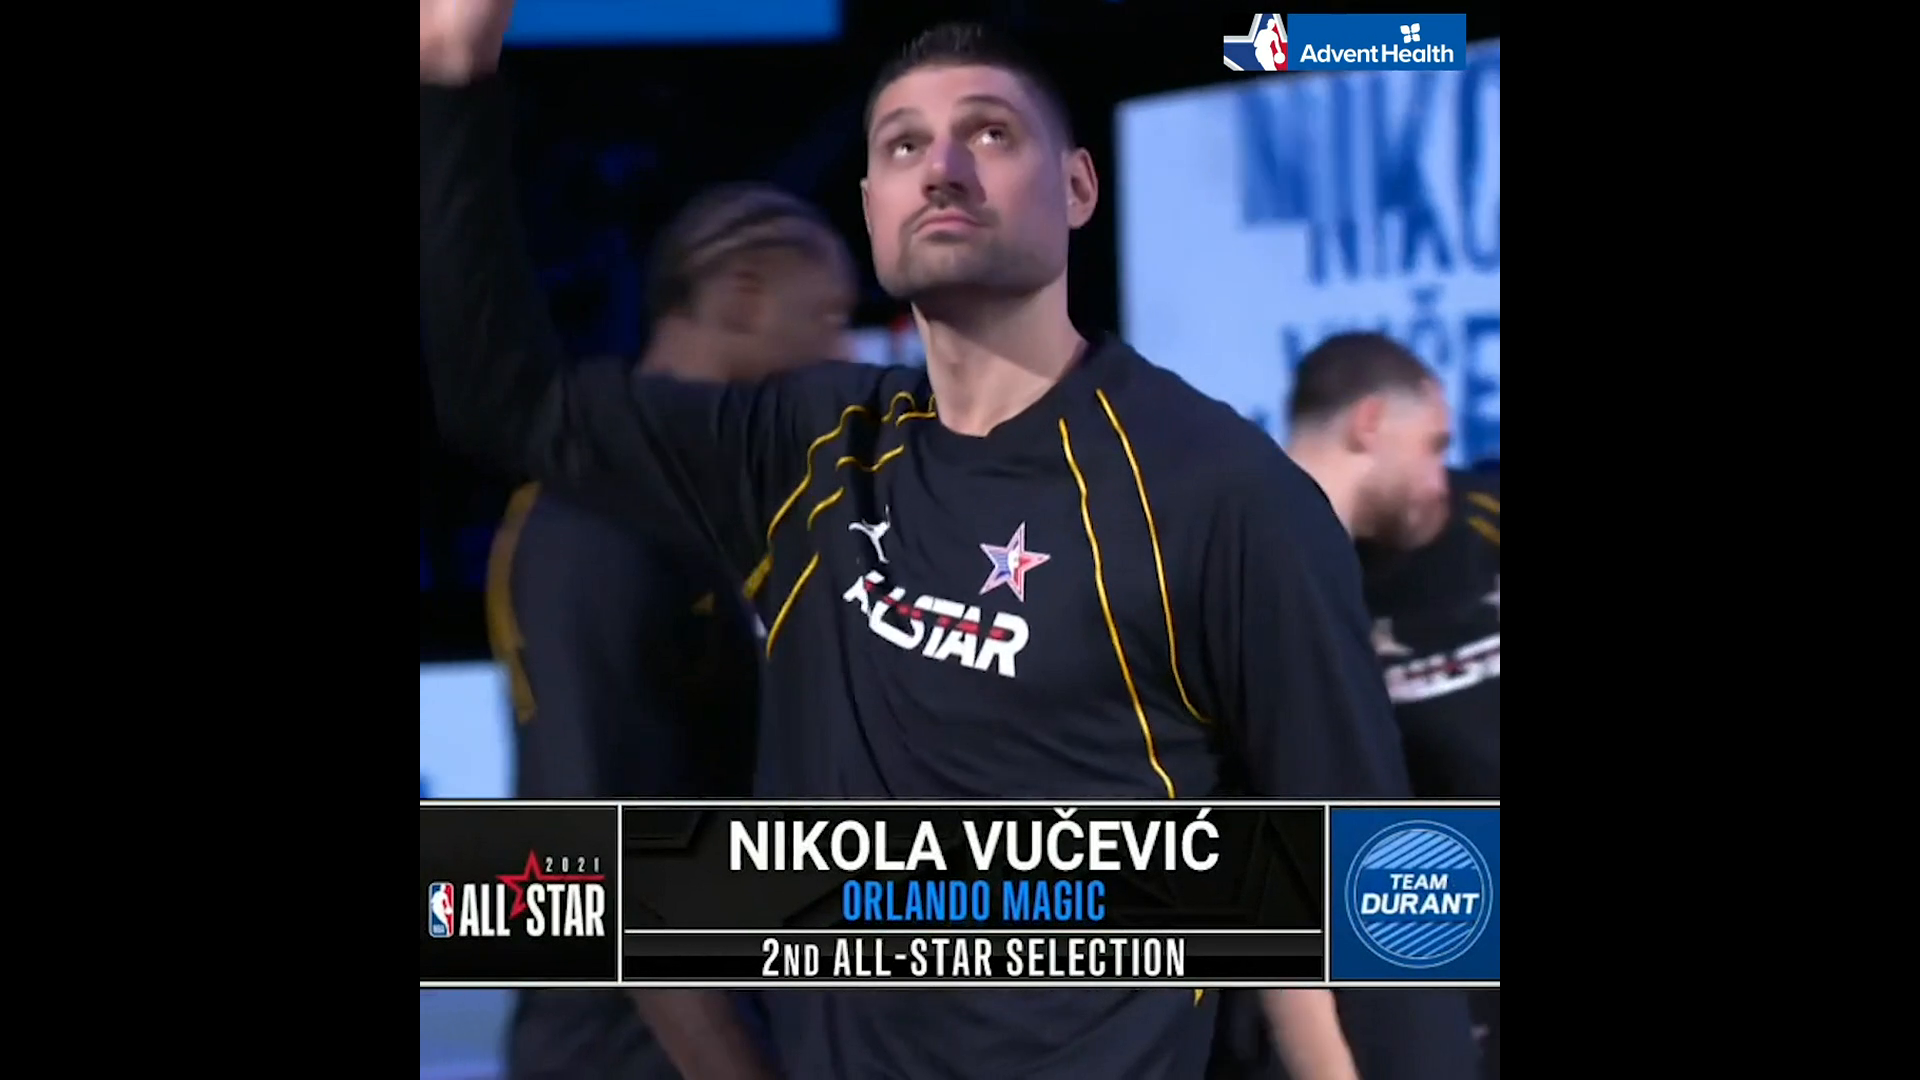 NBA All-Star Game Introductions: Nikola Vucevic